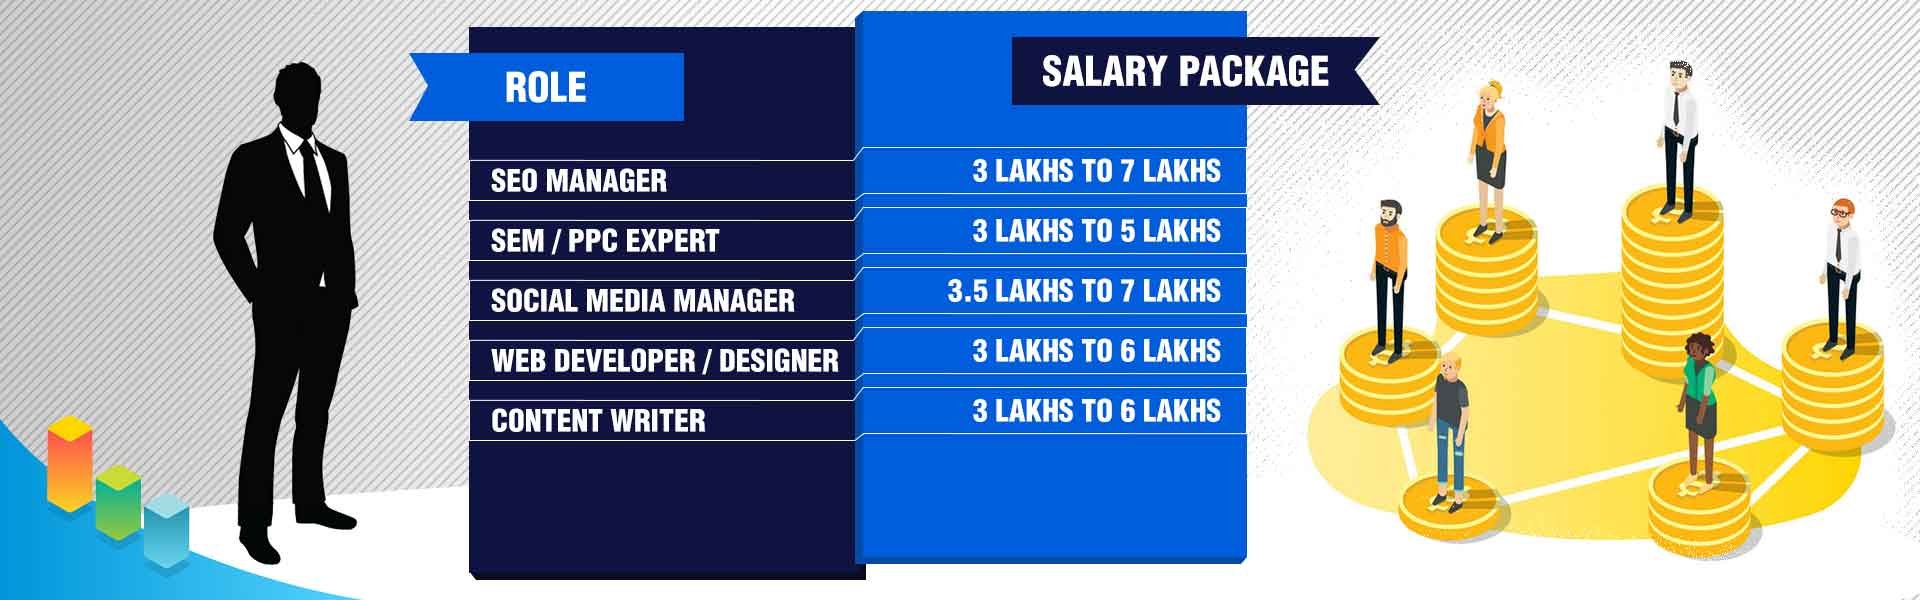 digital marketing Role and Salary Package